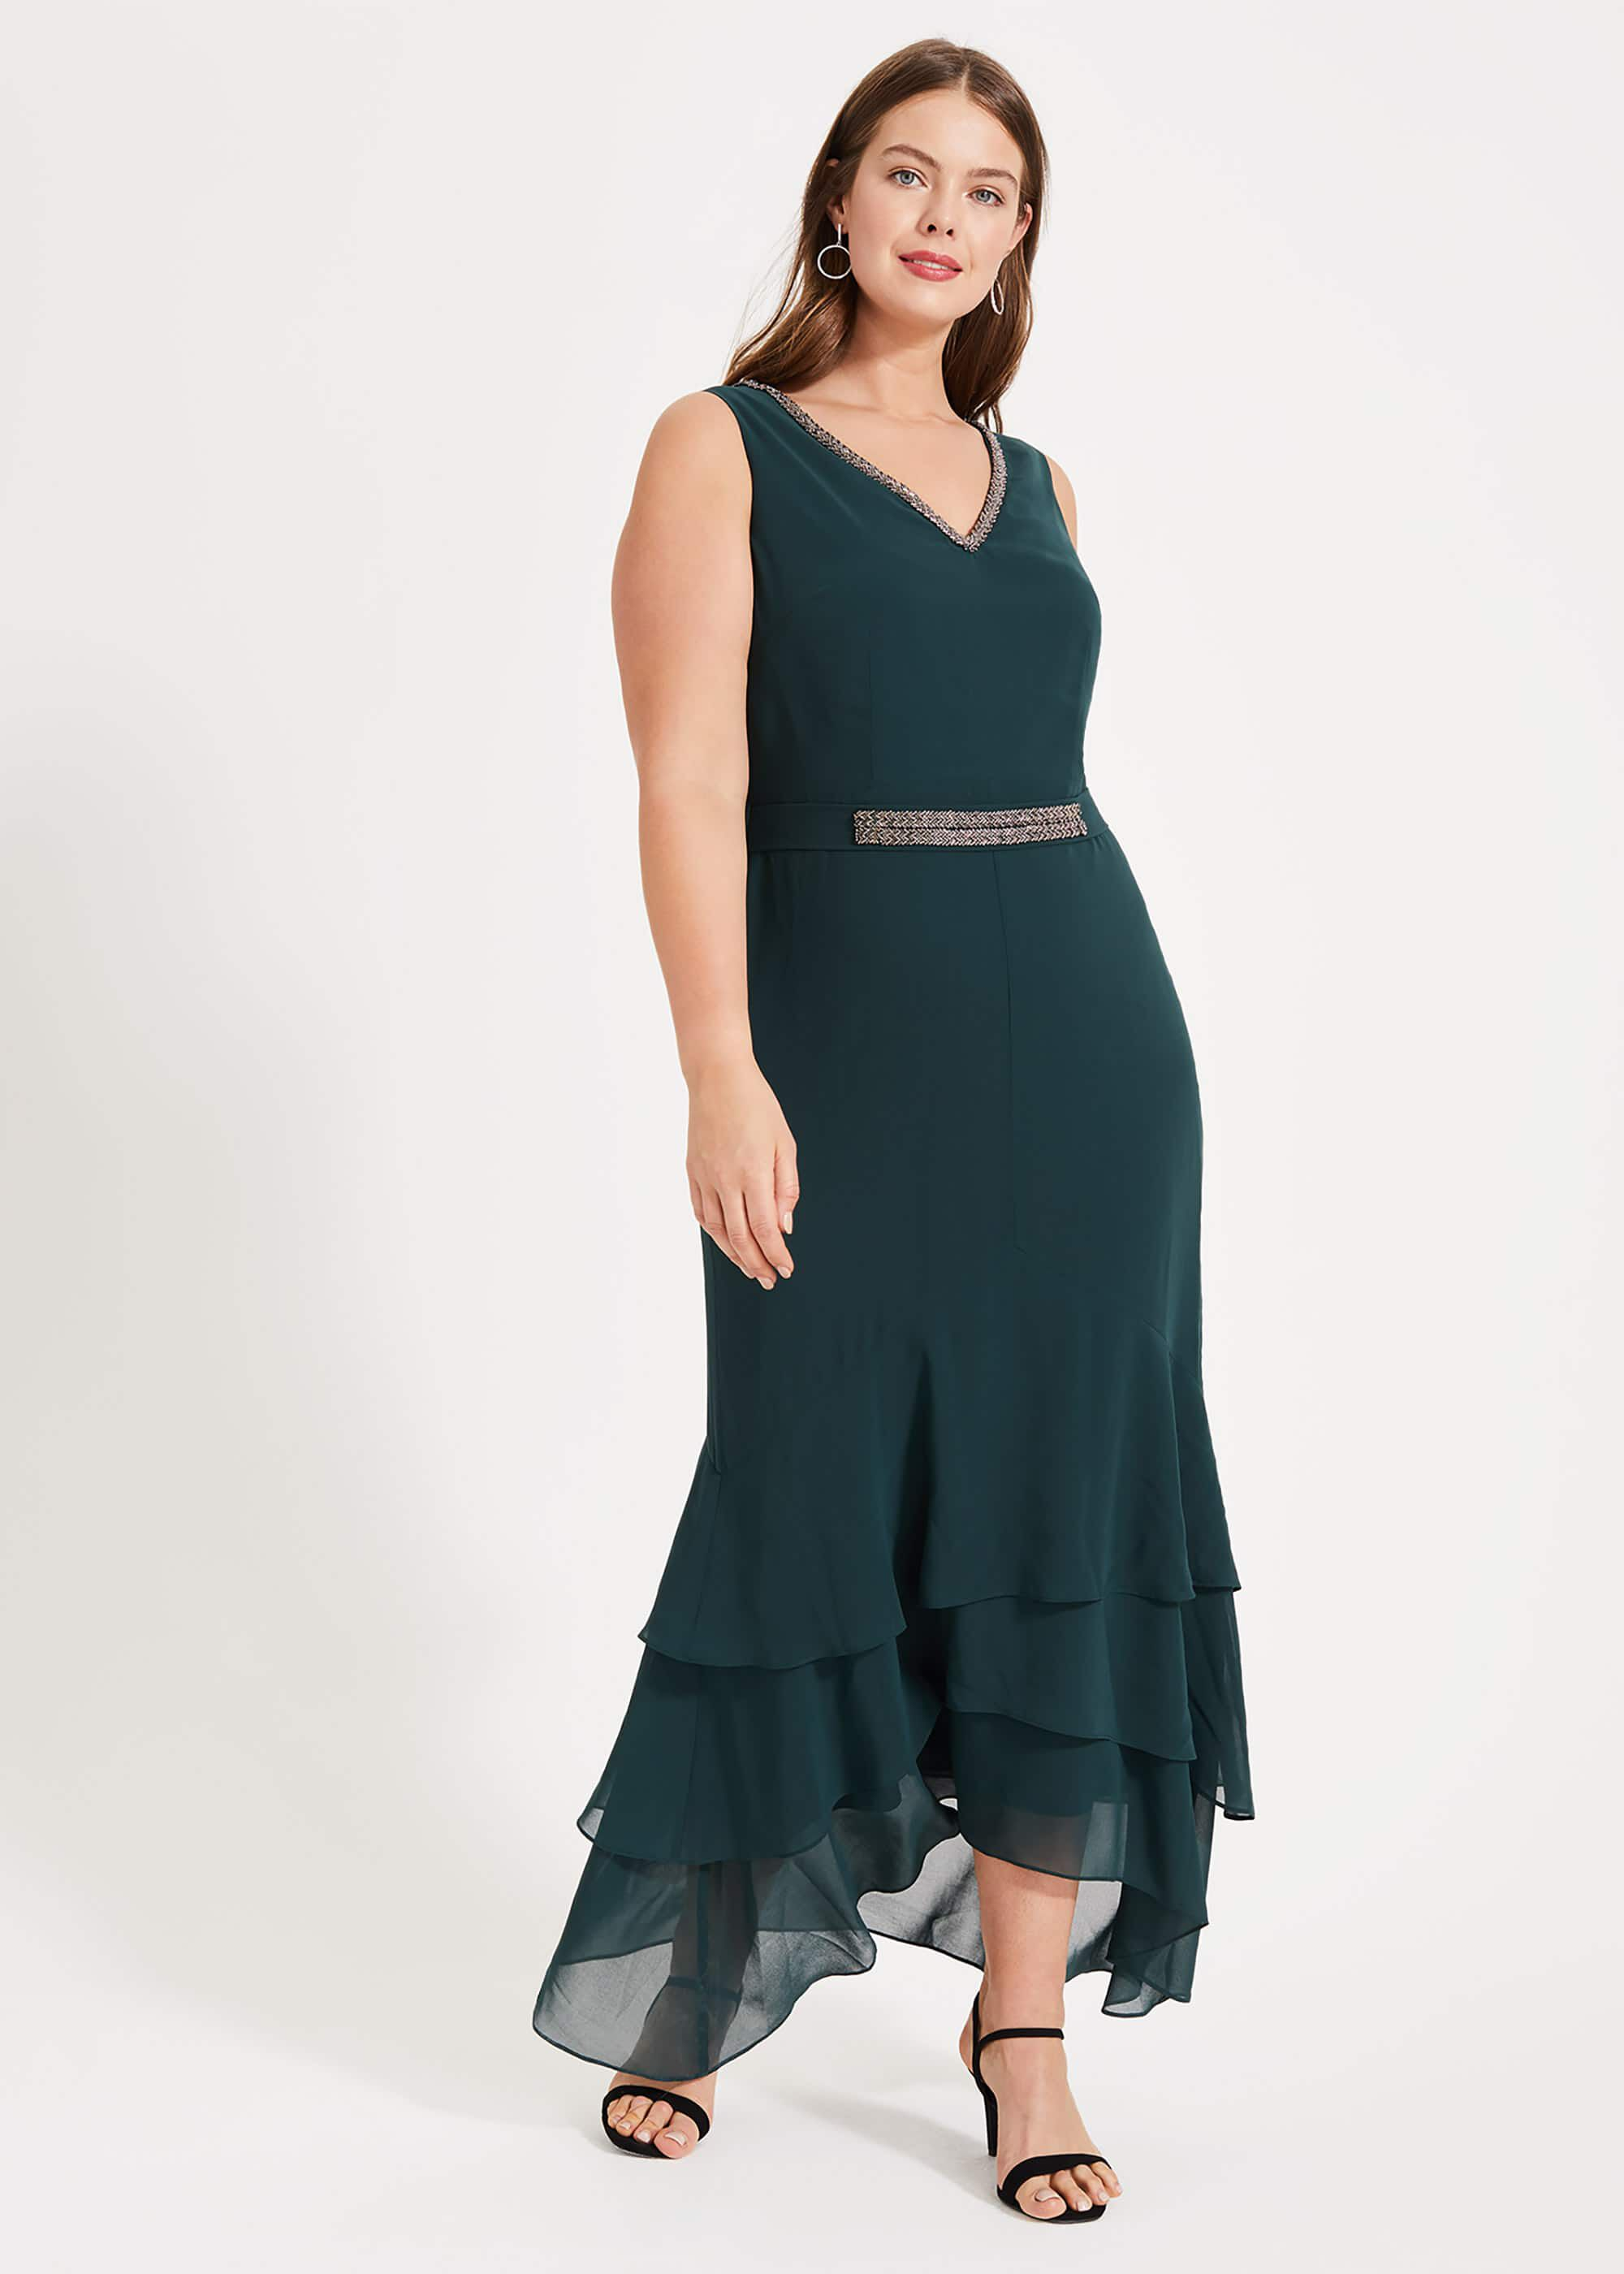 Studio 8 Valentina Maxi Dress, Green, Maxi